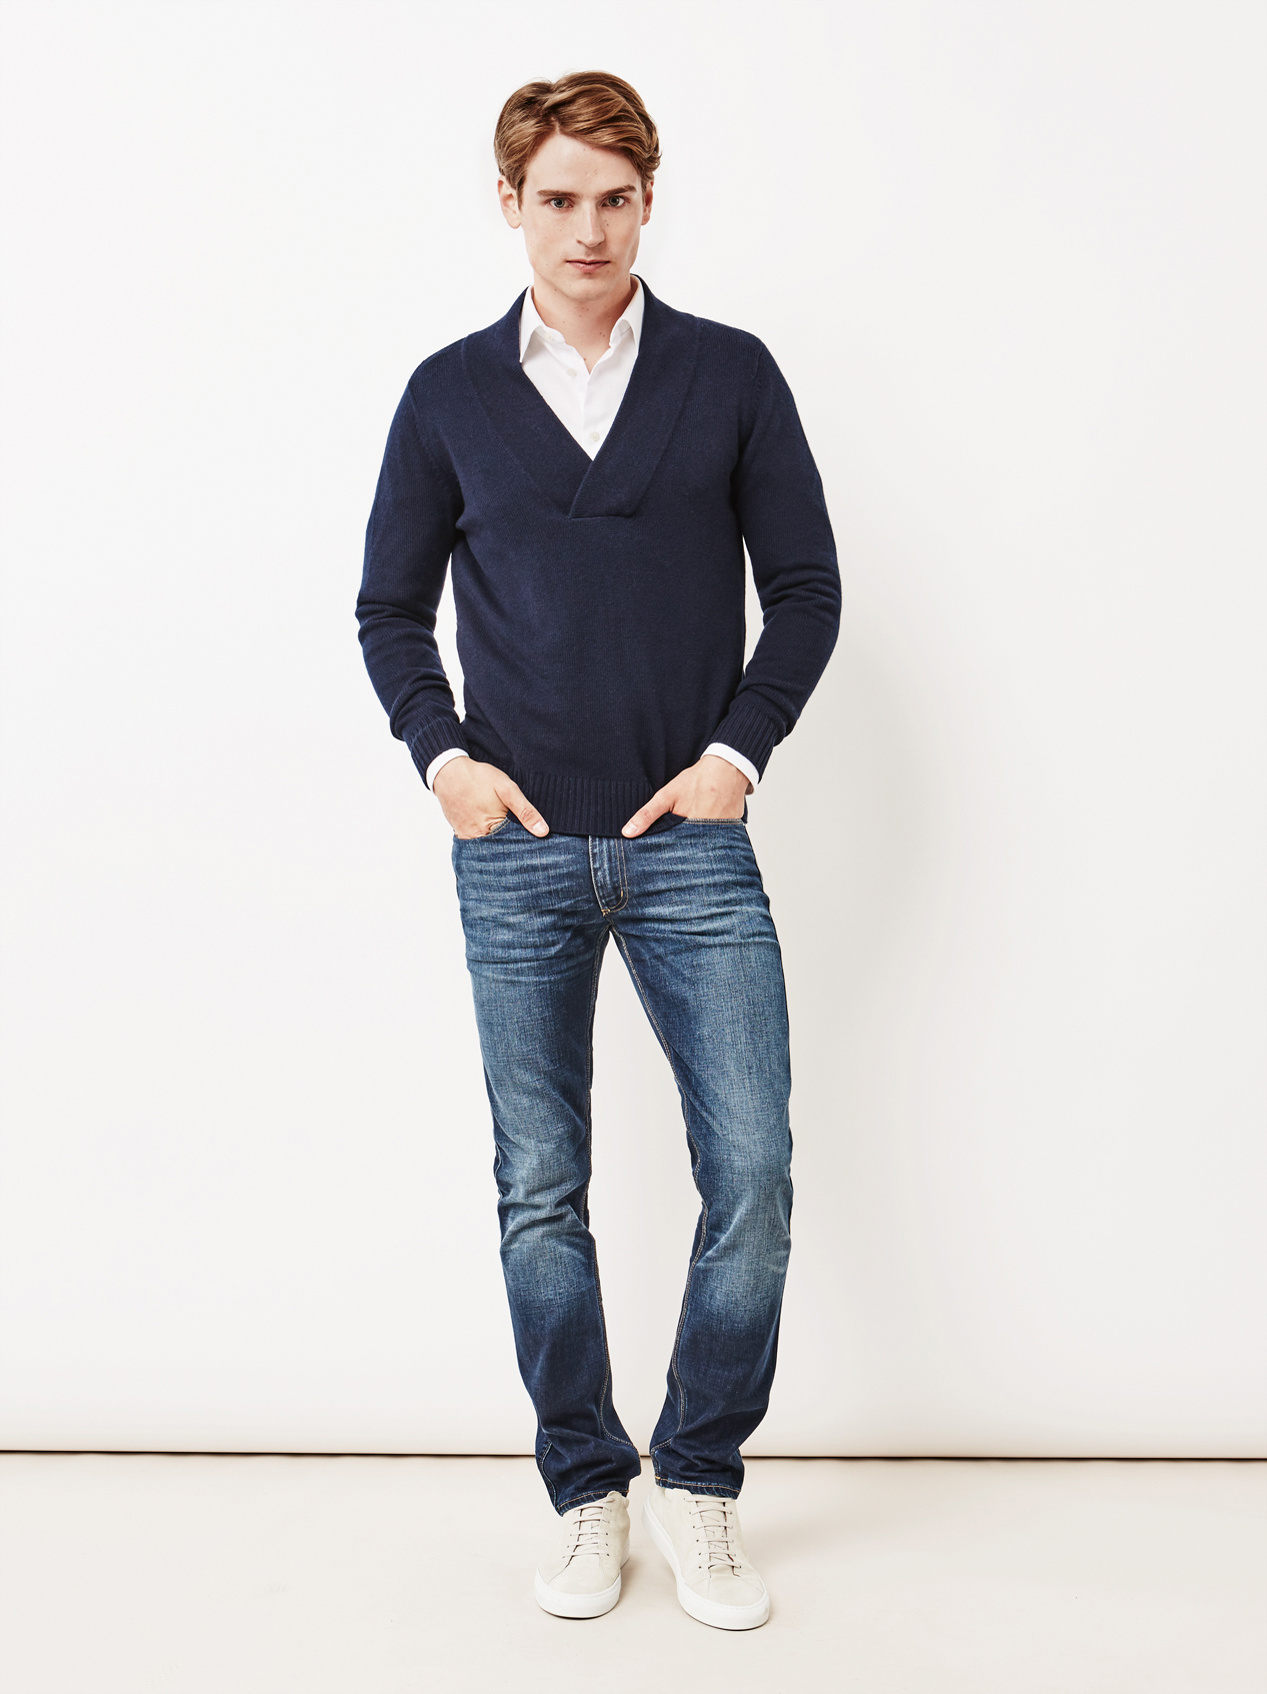 Soft Goat Men's Chunky V-Neck Sweater Navy